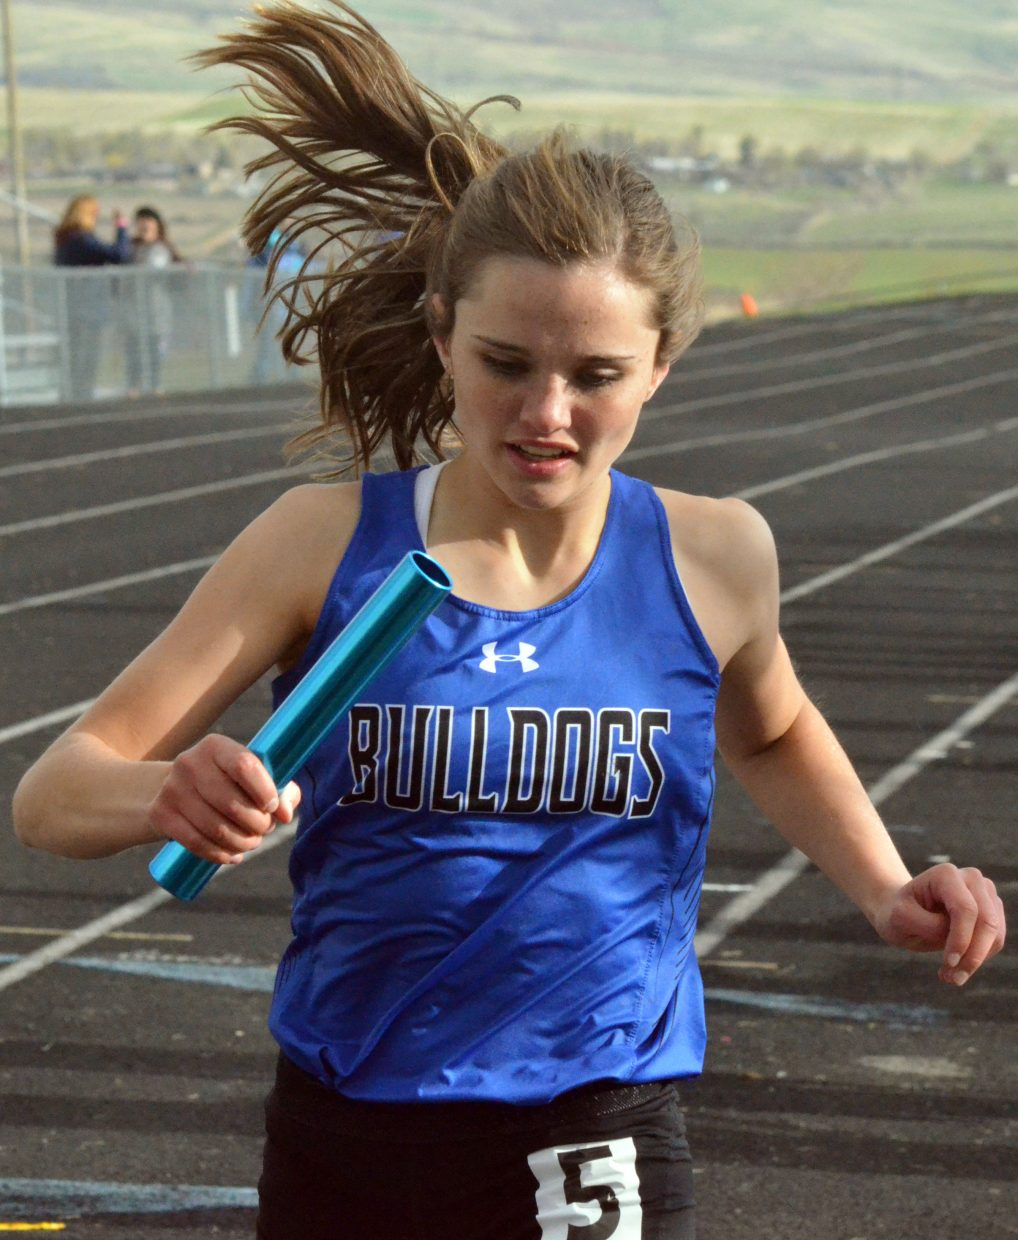 Moffat County High School's Stephenie Swindler hones in on the finish line during the girls 4x400-meter relay at Friday's Clint Wells Invitational in Craig. MCHS girls placed second among teams.